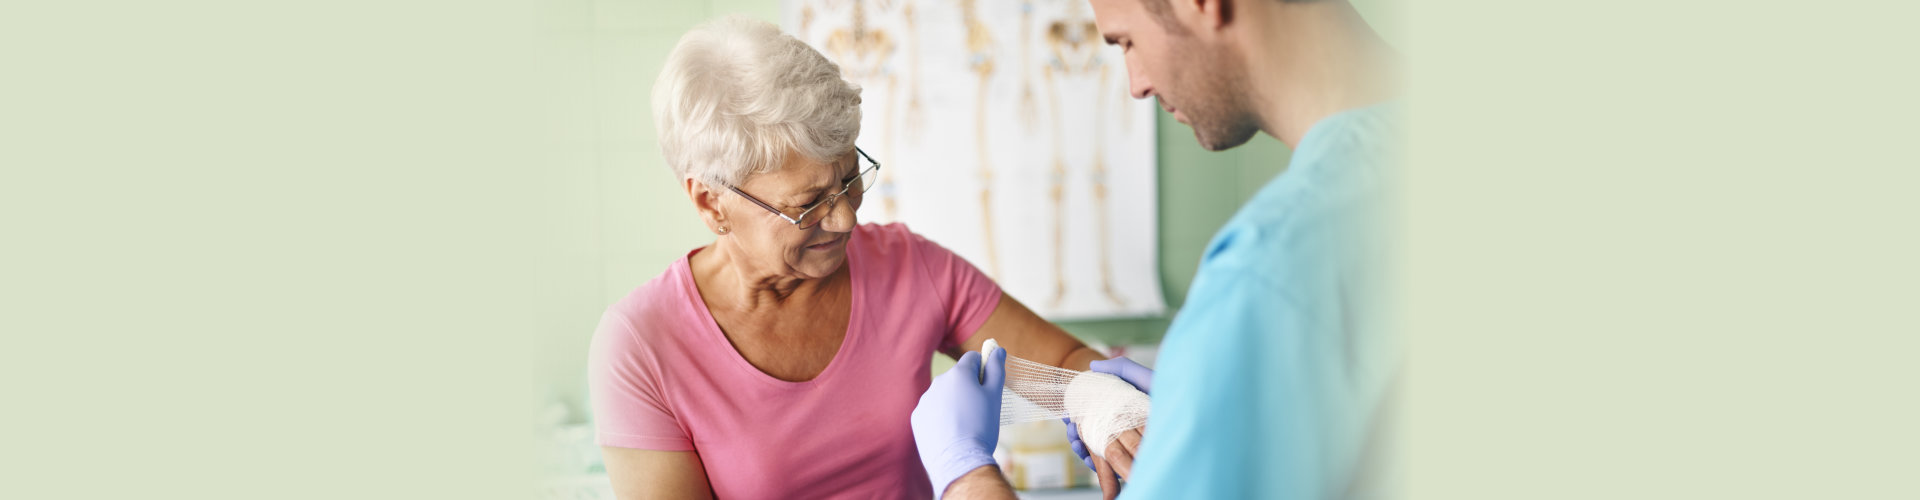 caregiver applying wound wrapping on the elder lady